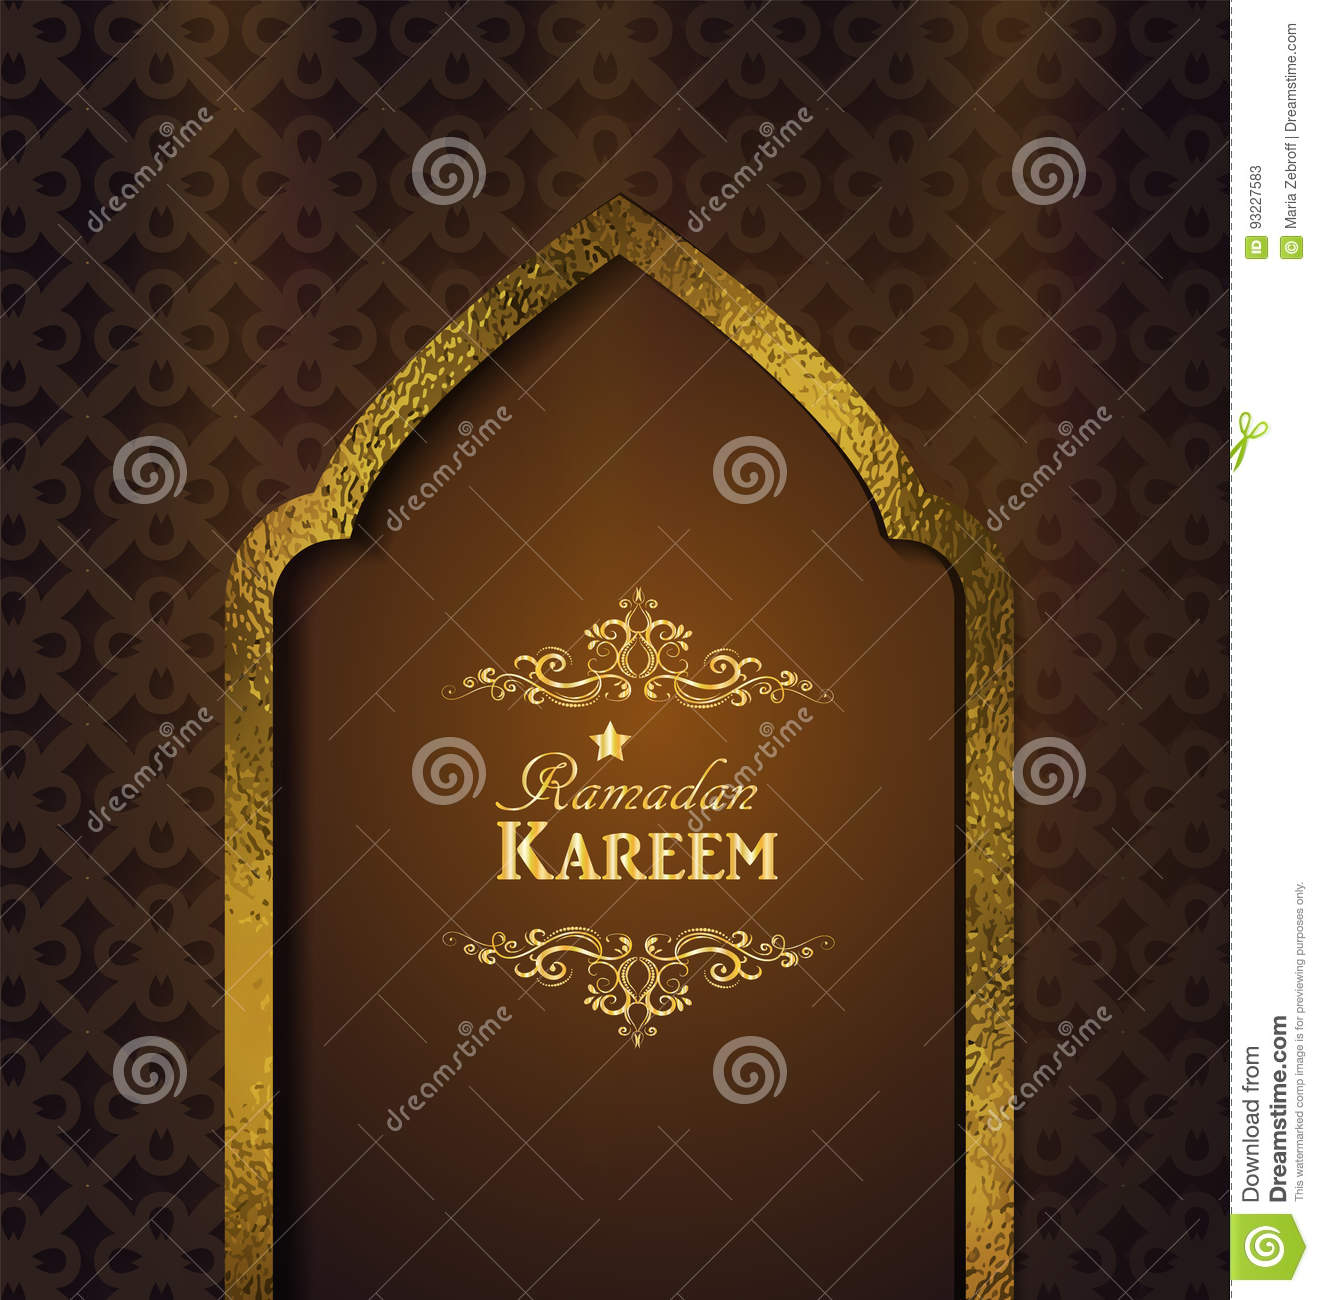 Islamic Design Mosque Door Vector Illustration | CartoonDealer.com #93491228 & Islamic Design Mosque Door Vector Illustration | CartoonDealer.com ...